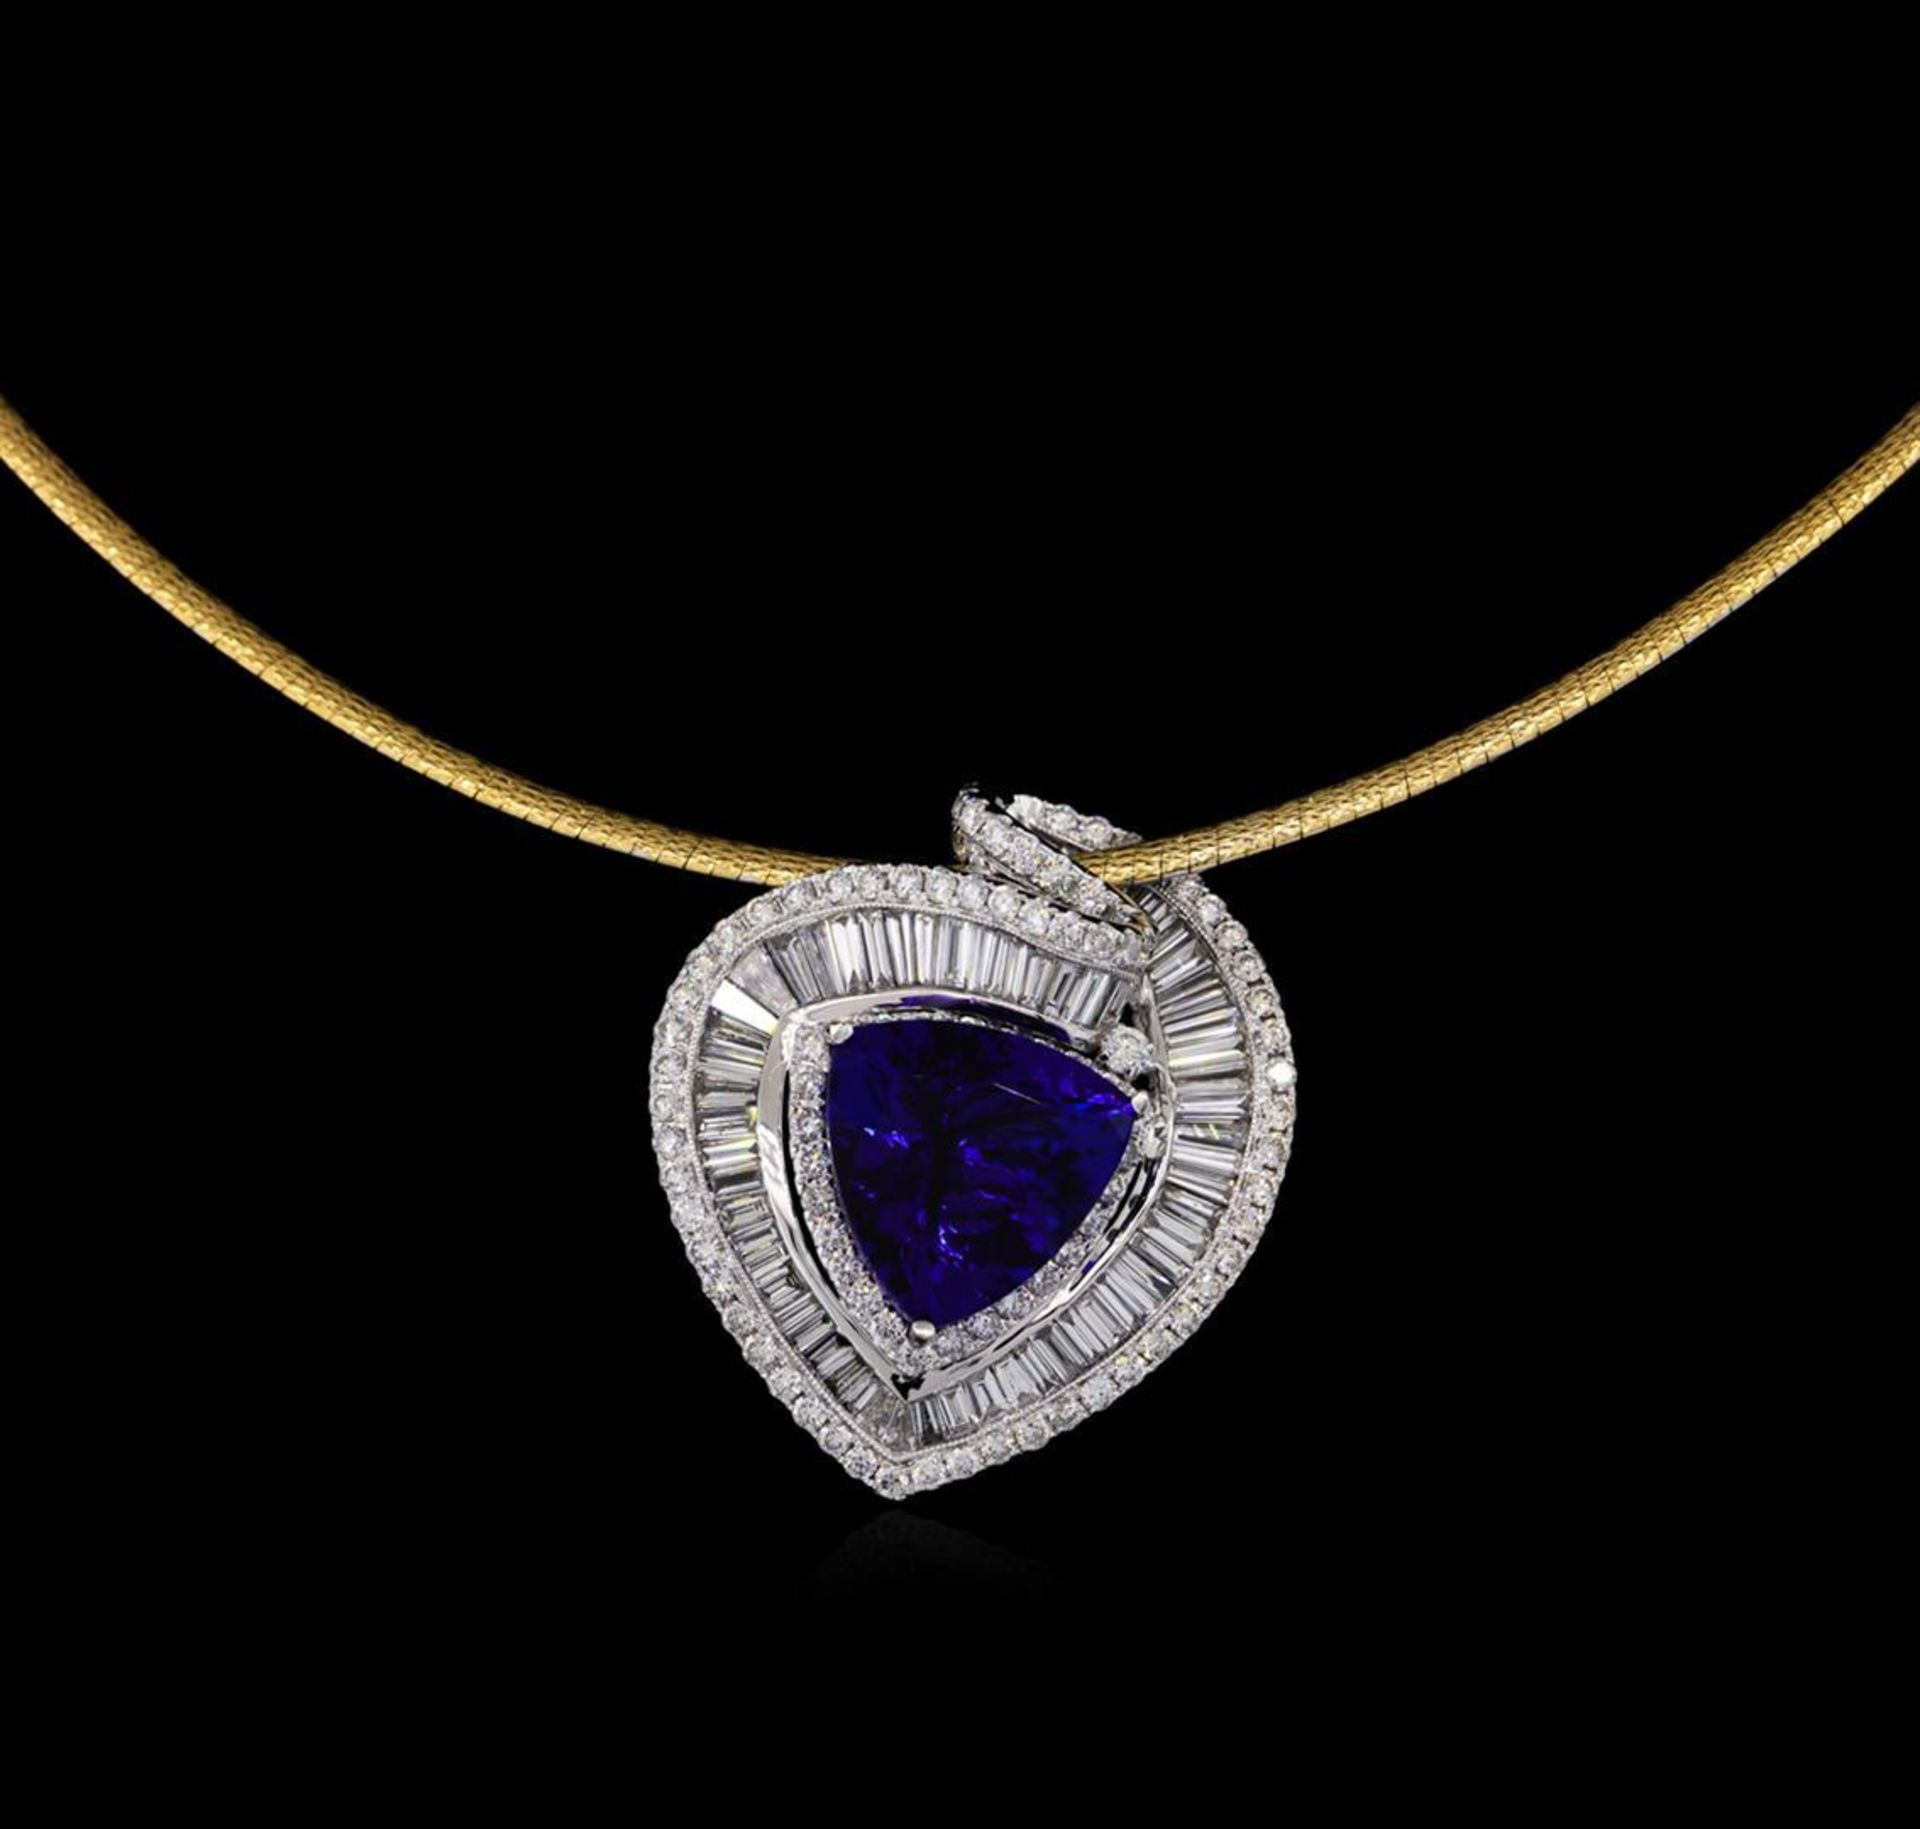 14KT Two-Tone Gold 10.88 ctw Tanzanite and Diamond Pendant With Chain - Image 2 of 4